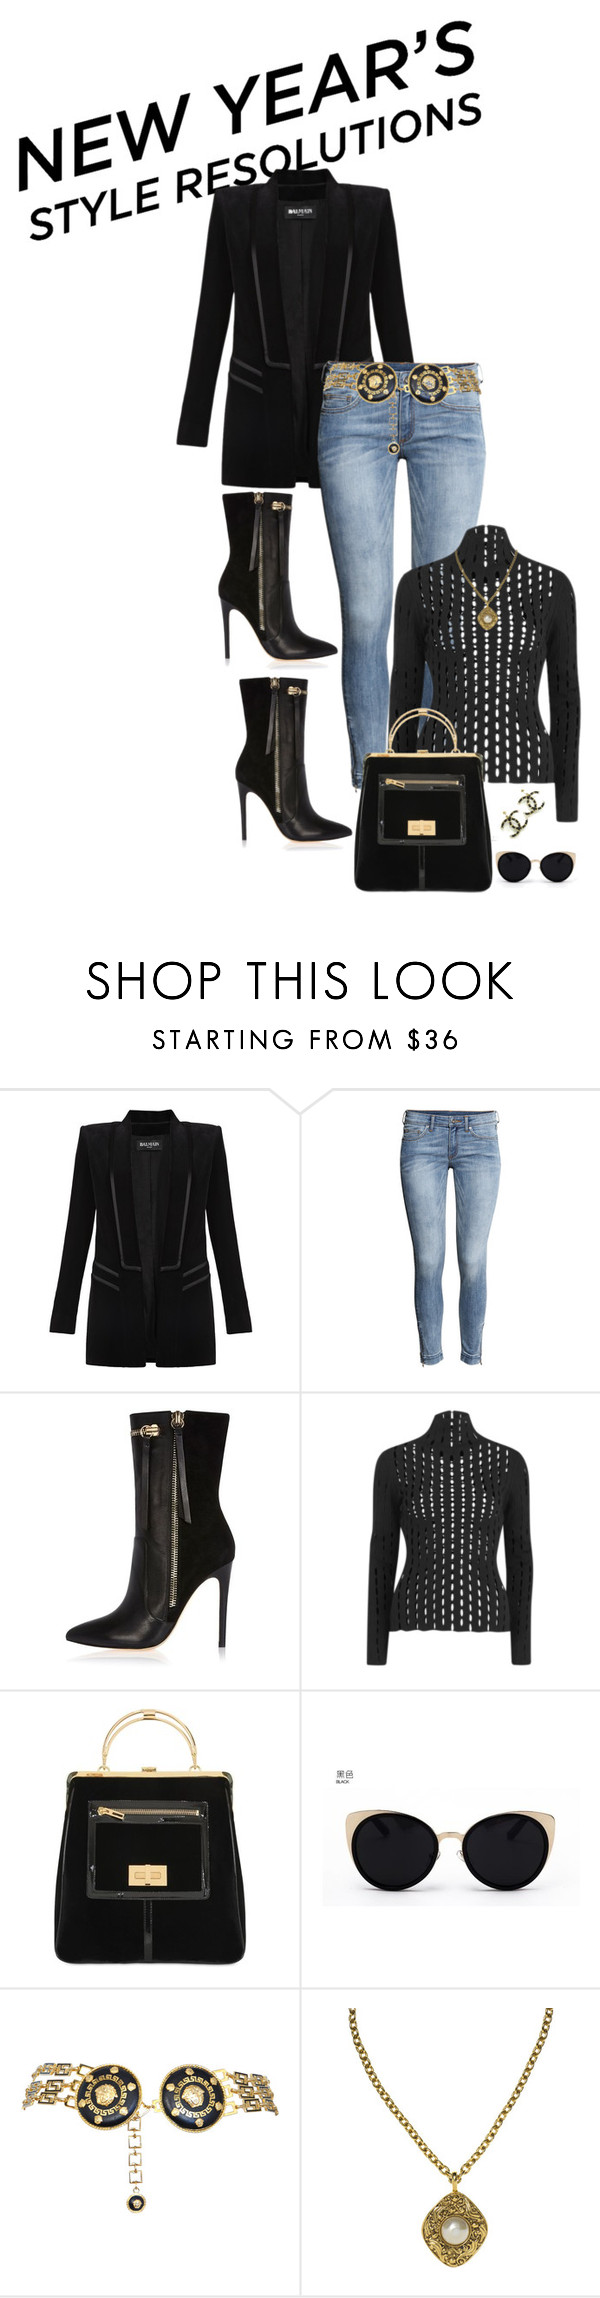 """Woman Of Power"" by amanningc ❤ liked on Polyvore featuring Balmain, H&M, River Island, Alexander Wang, Una-Home, Versace and Chanel"